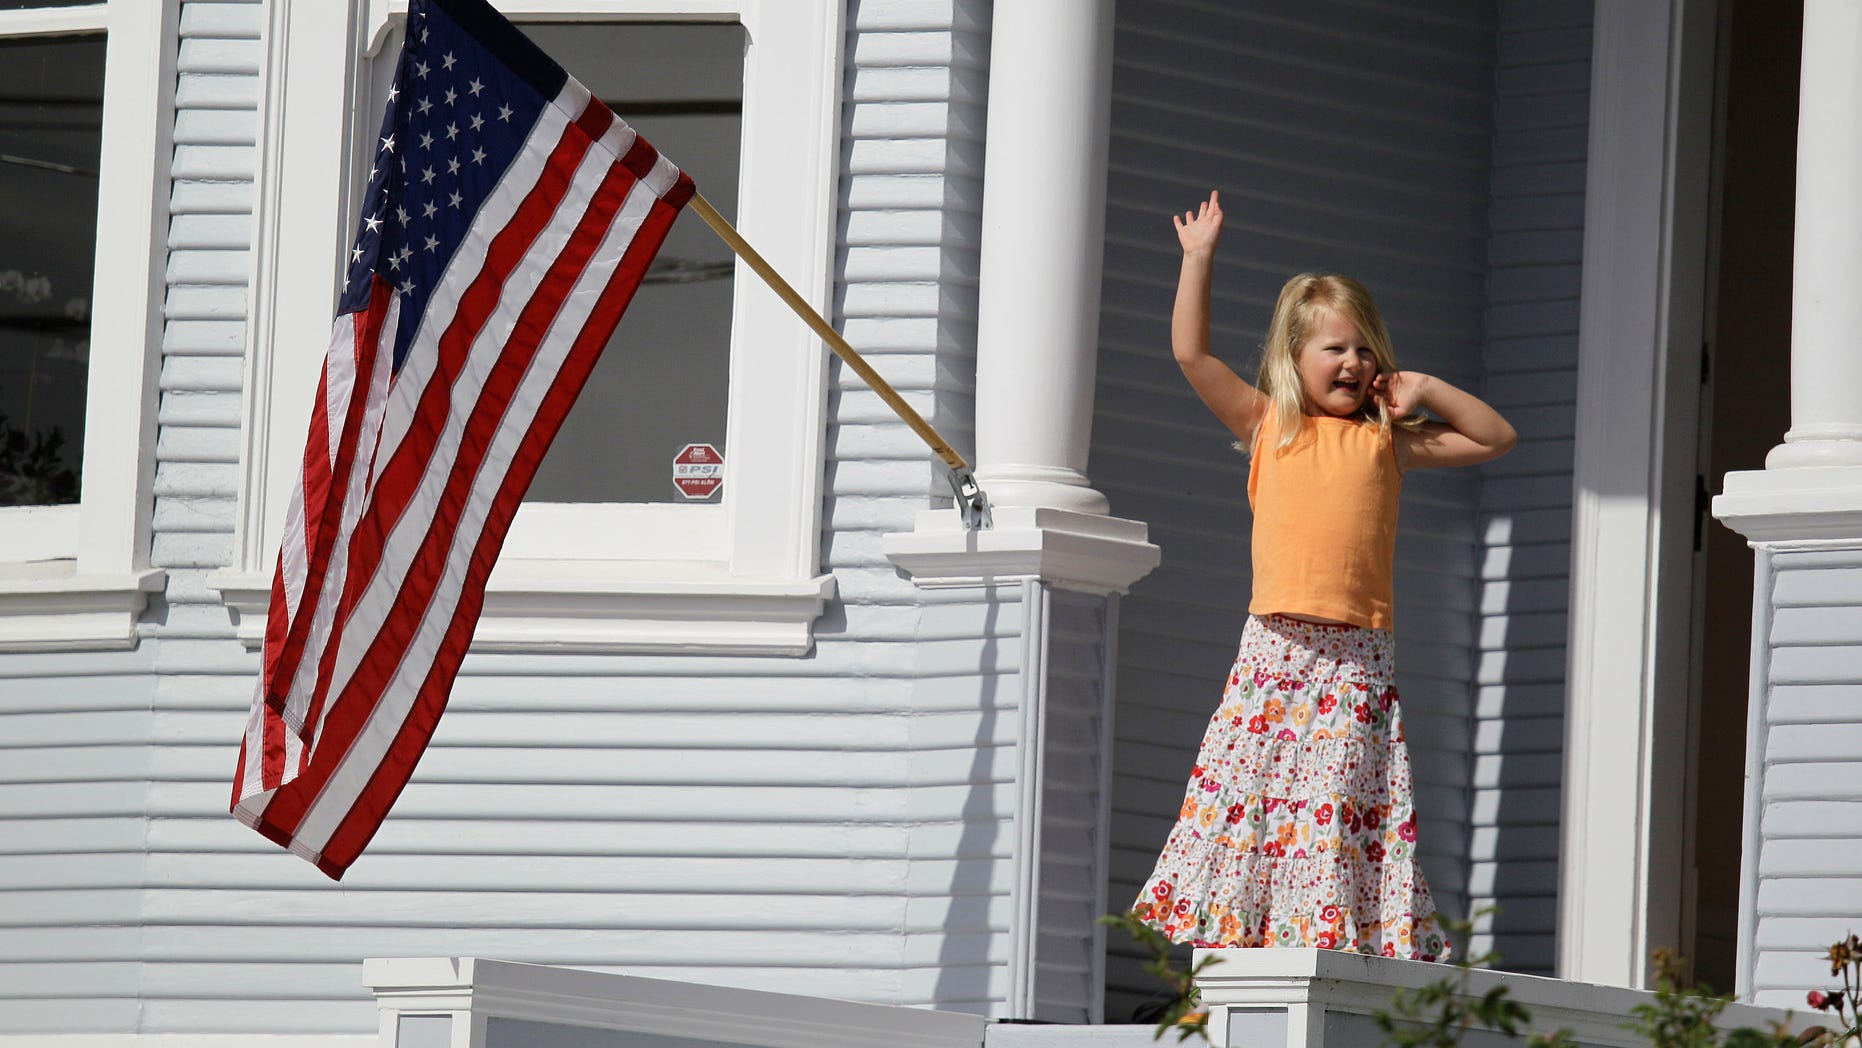 July 4, 2012: Margaret White, 5, waves from her porch as floats and marchers assemble for the start of the annual Fourth of July parade in Sausalito, Calif.